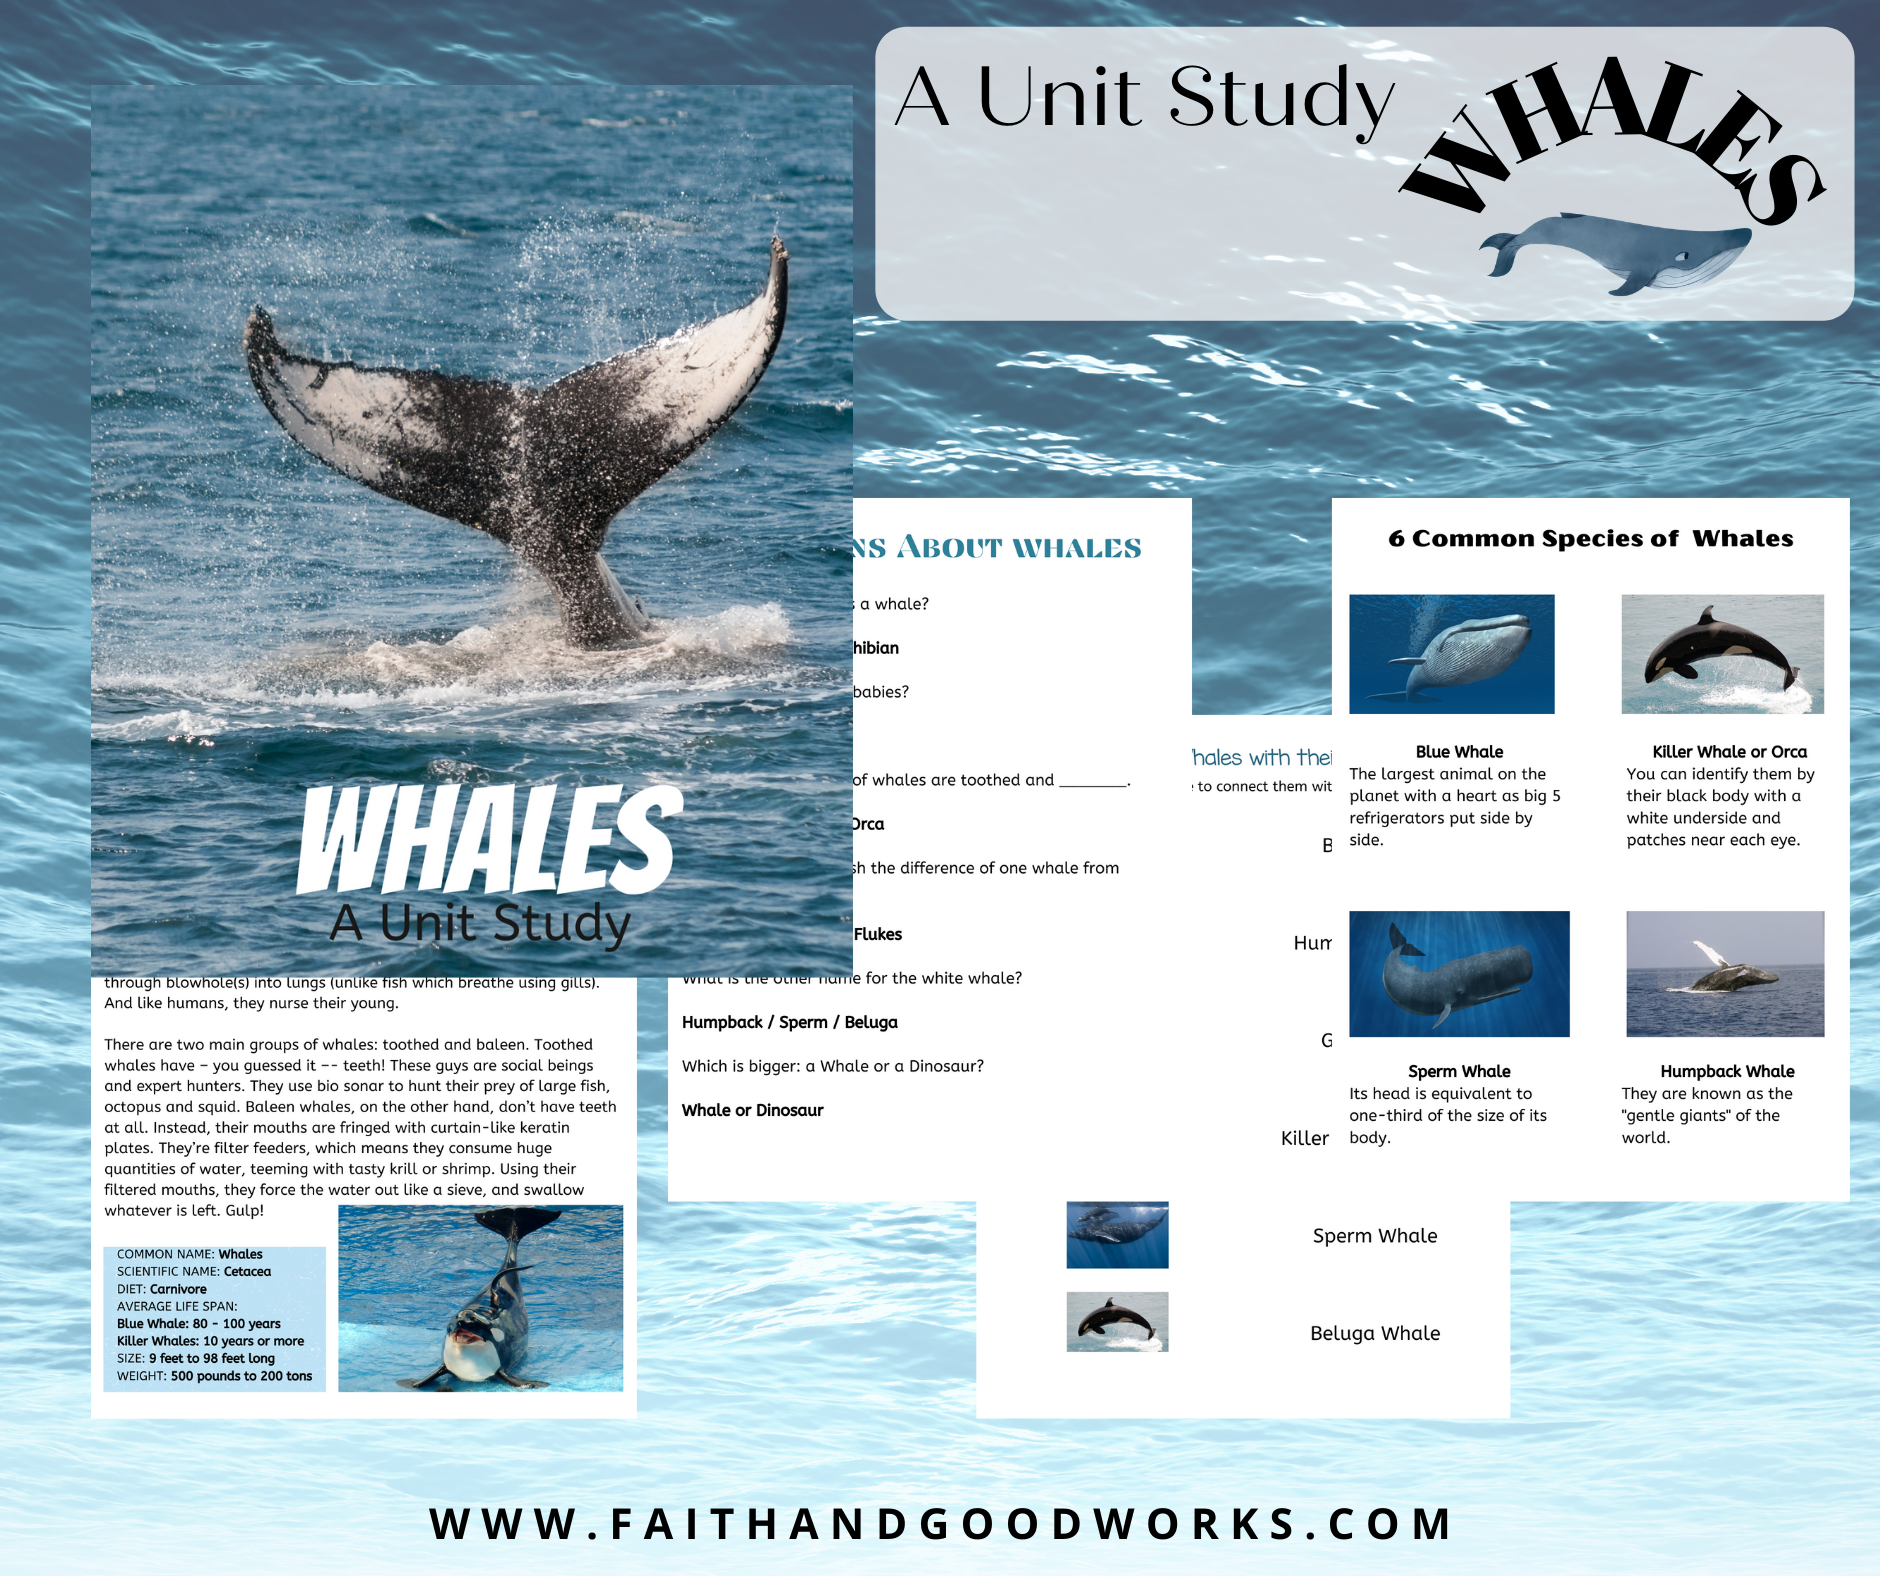 Pictures showing what comes in the whale unit study pack.